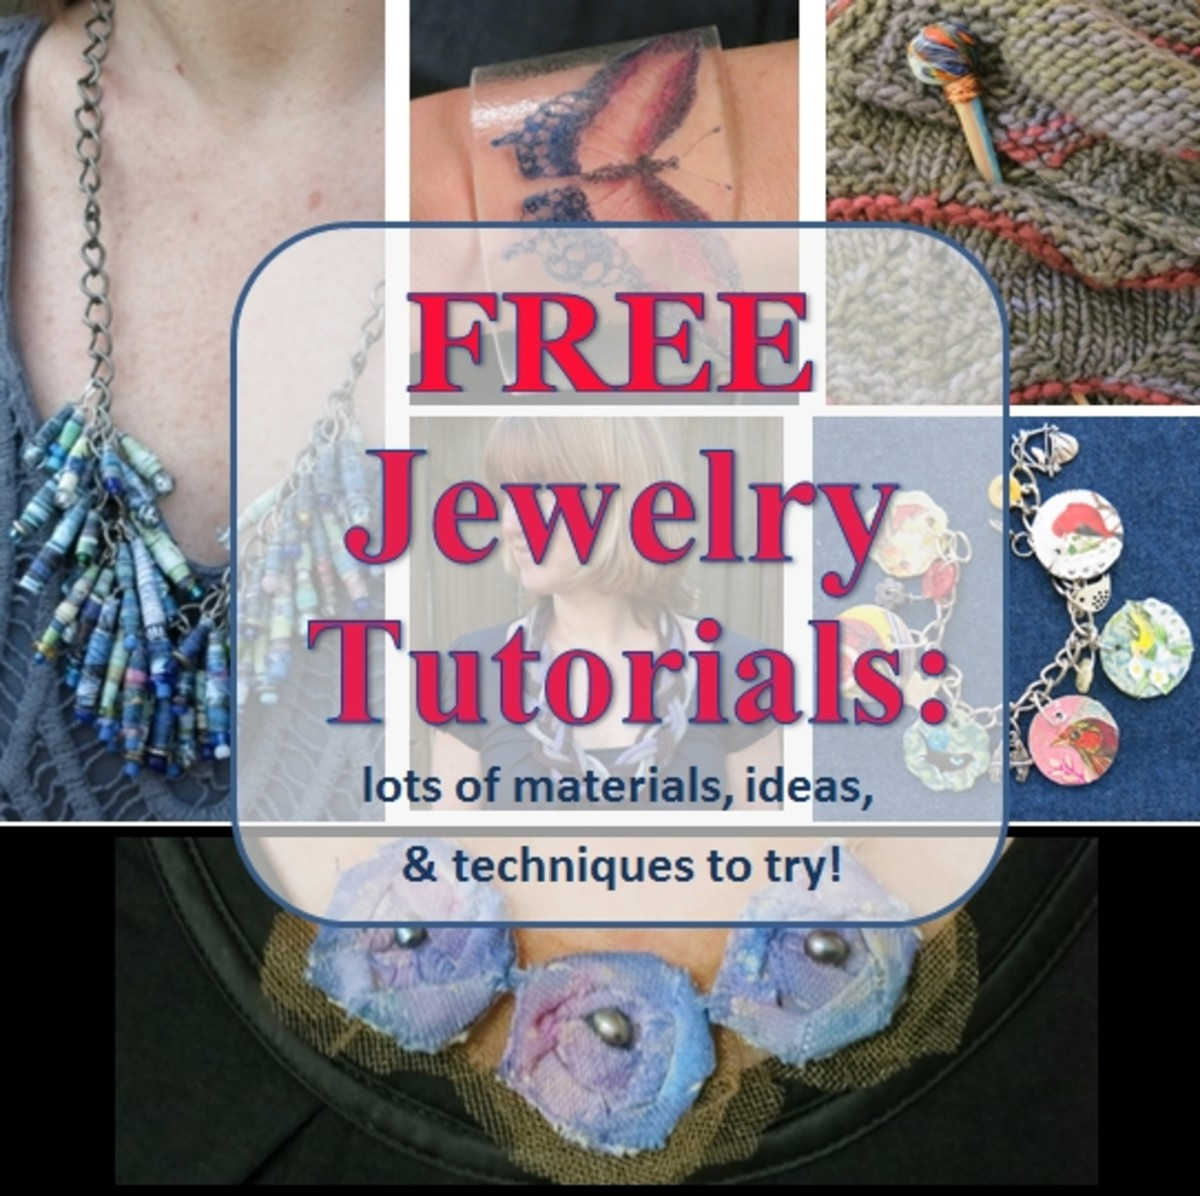 Free Jewelry Making Tutorials for Crafting Pins, Bracelets, Necklaces and More